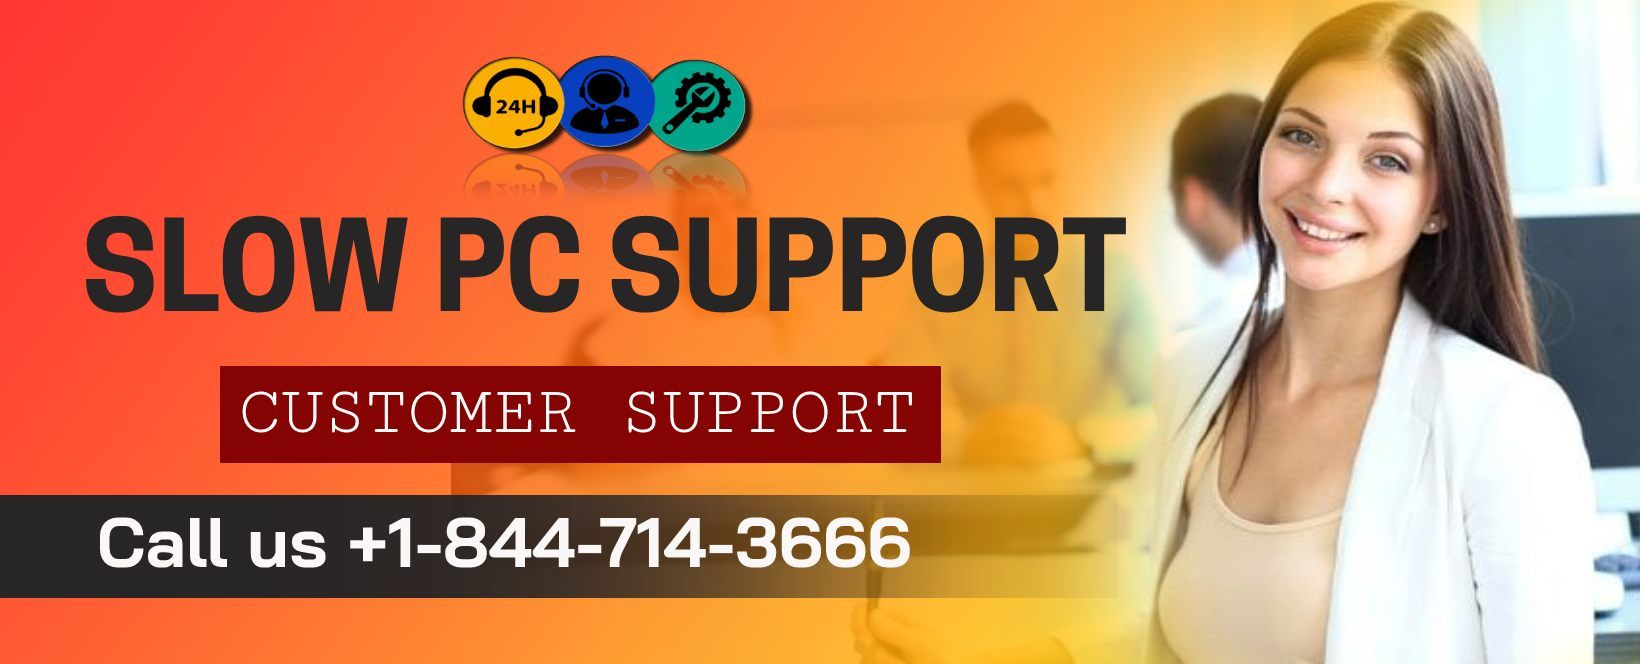 Slow PC technical support Number +18447143666 / Support